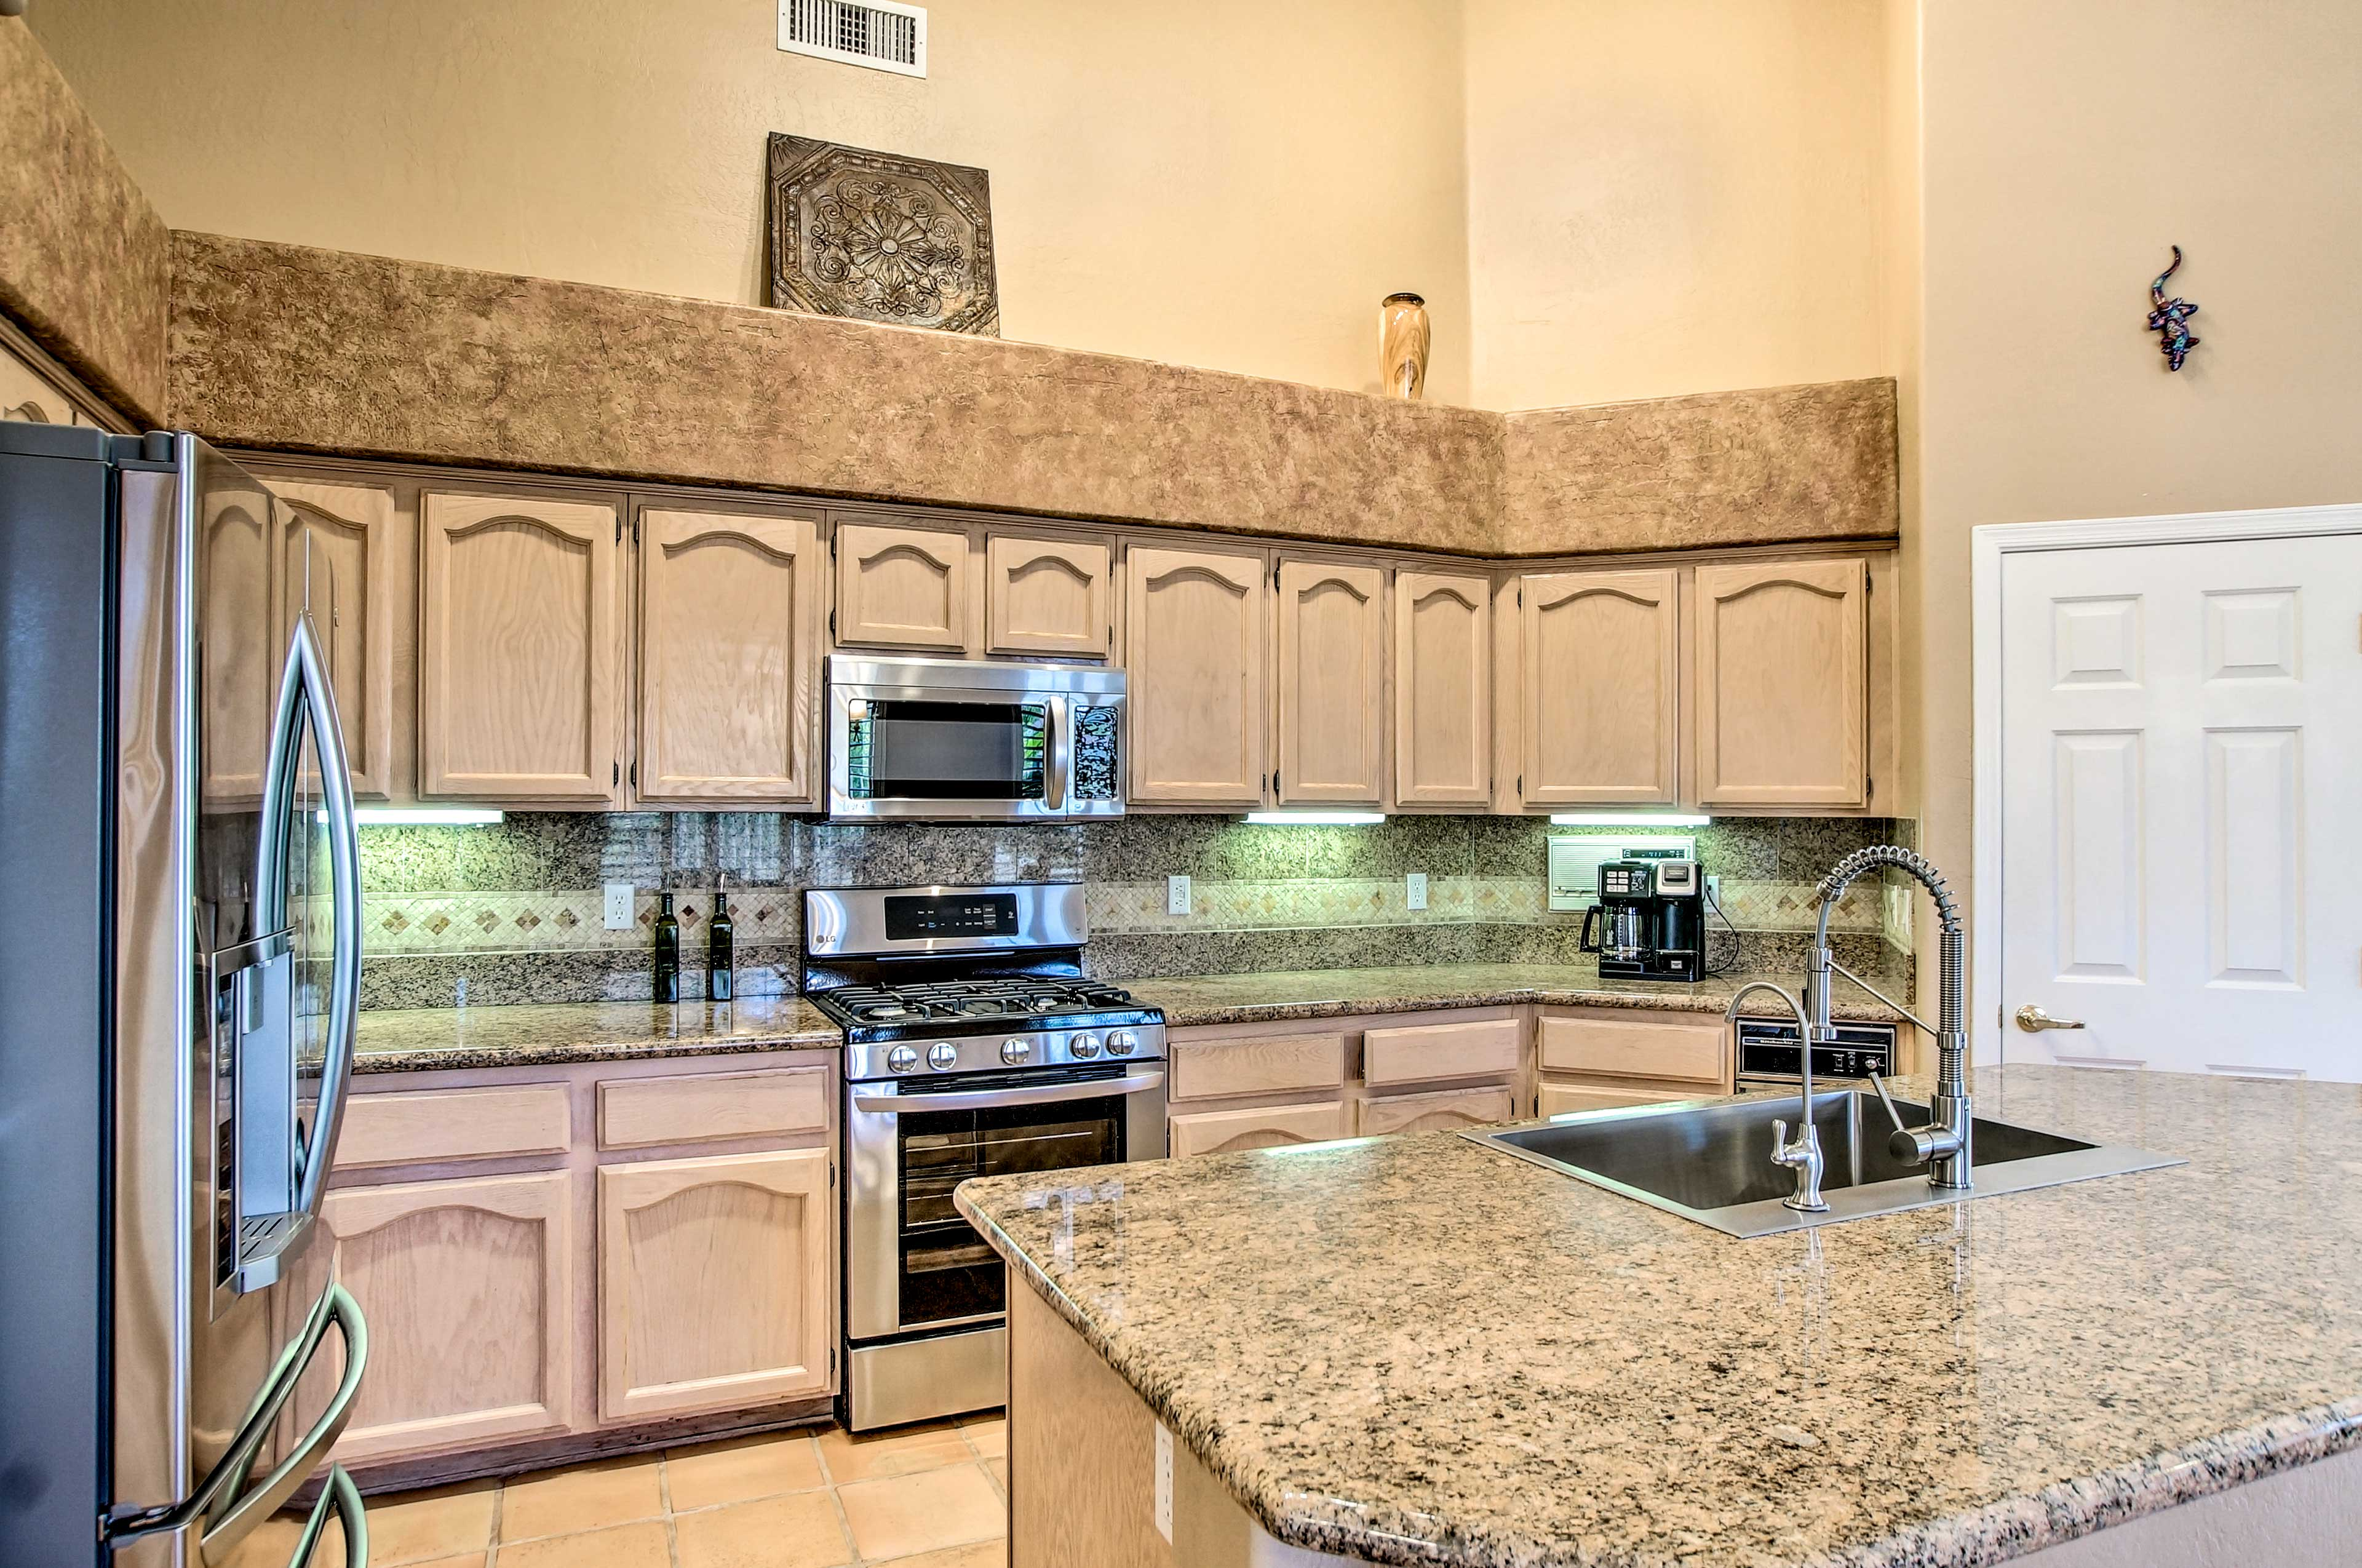 From stainless steel appliances to Keurig coffee maker, the kitchen is complete!